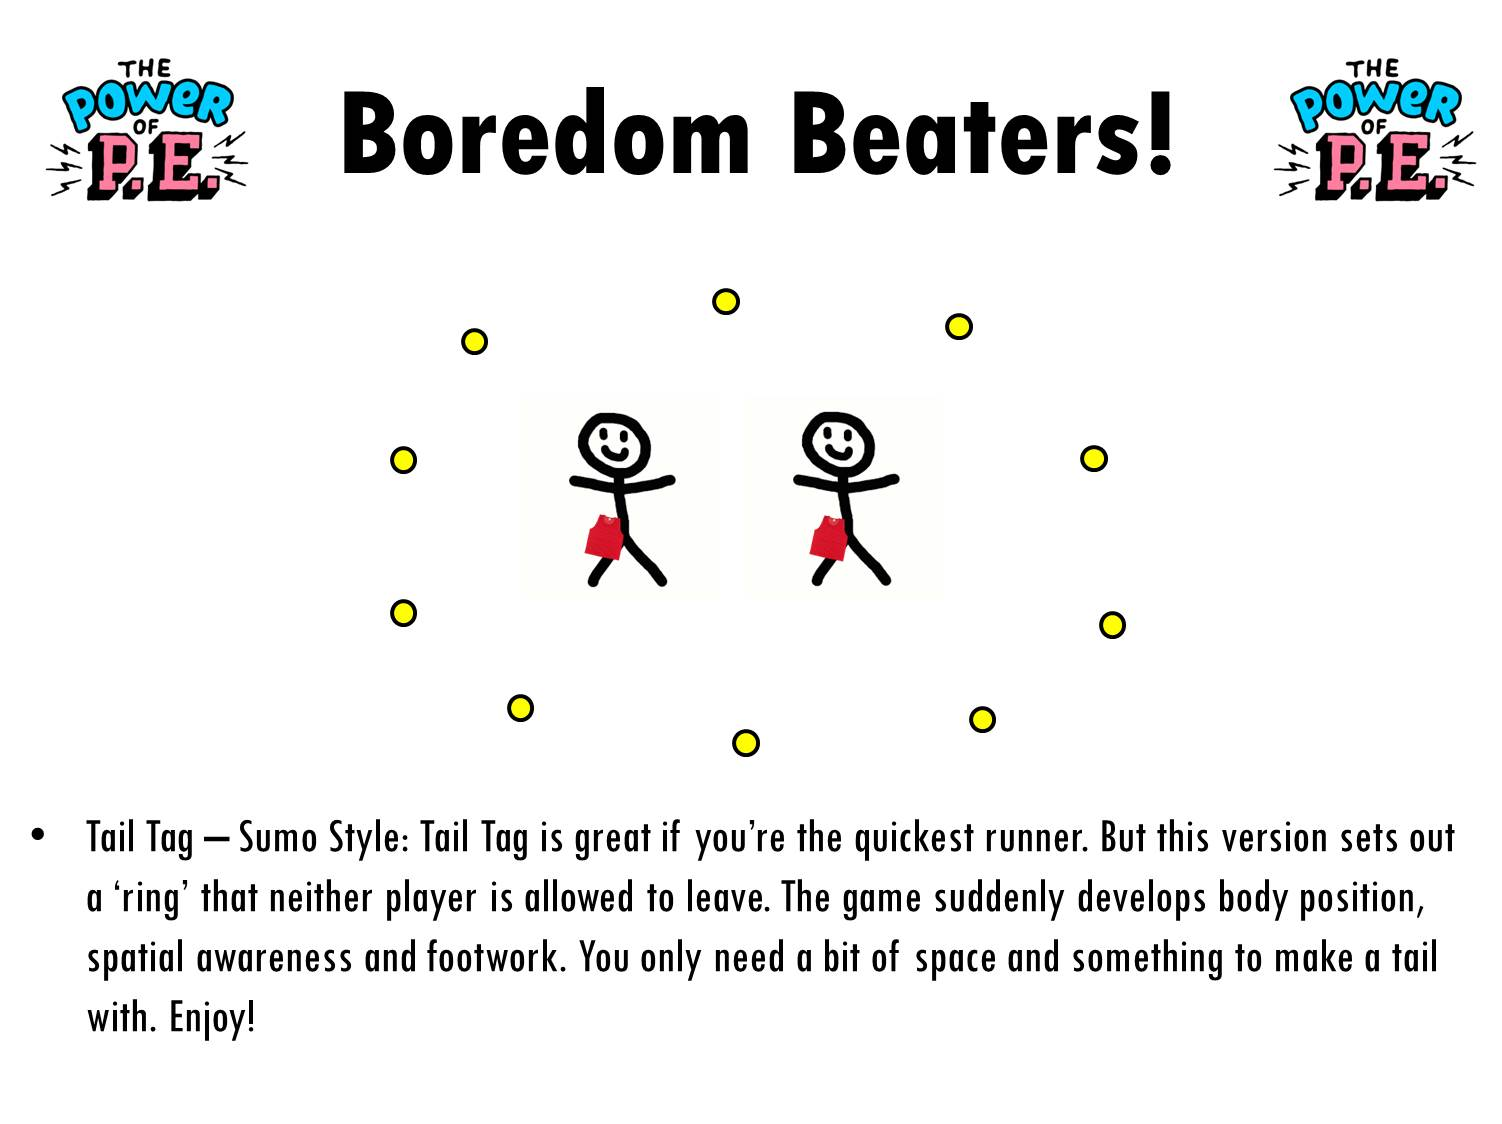 Boredom Beaters! - Ideas to keep kids active at home - Power of PE ...